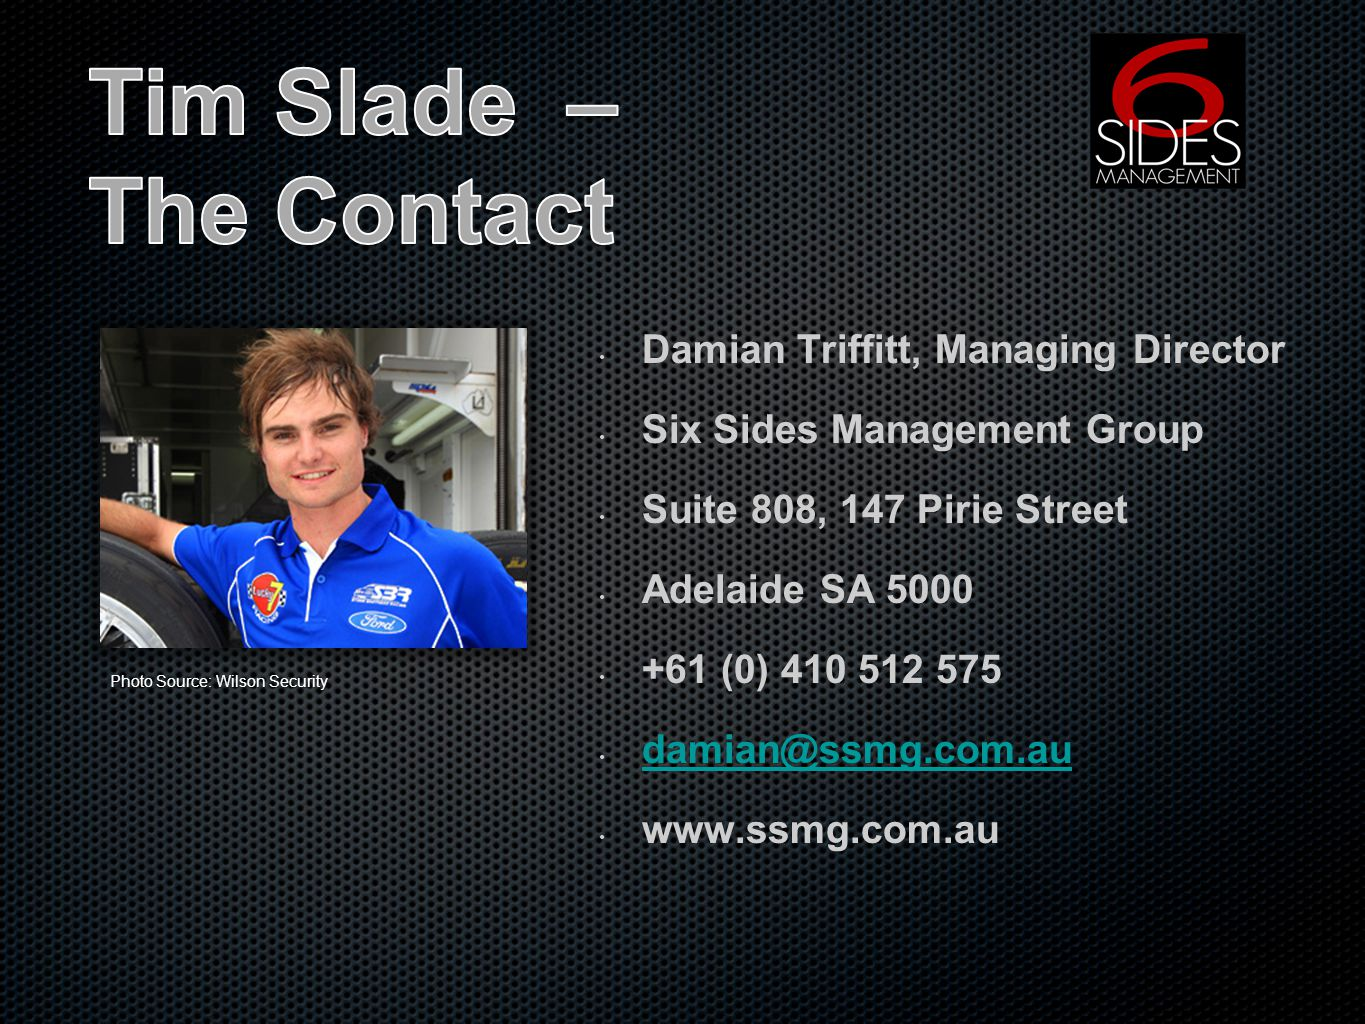 Damian Triffitt, Managing Director Six Sides Management Group Suite 808, 147 Pirie Street Adelaide SA 5000 +61 (0) 410 512 575 damian@ssmg.com.au www.ssmg.com.au Photo Source: Wilson Security